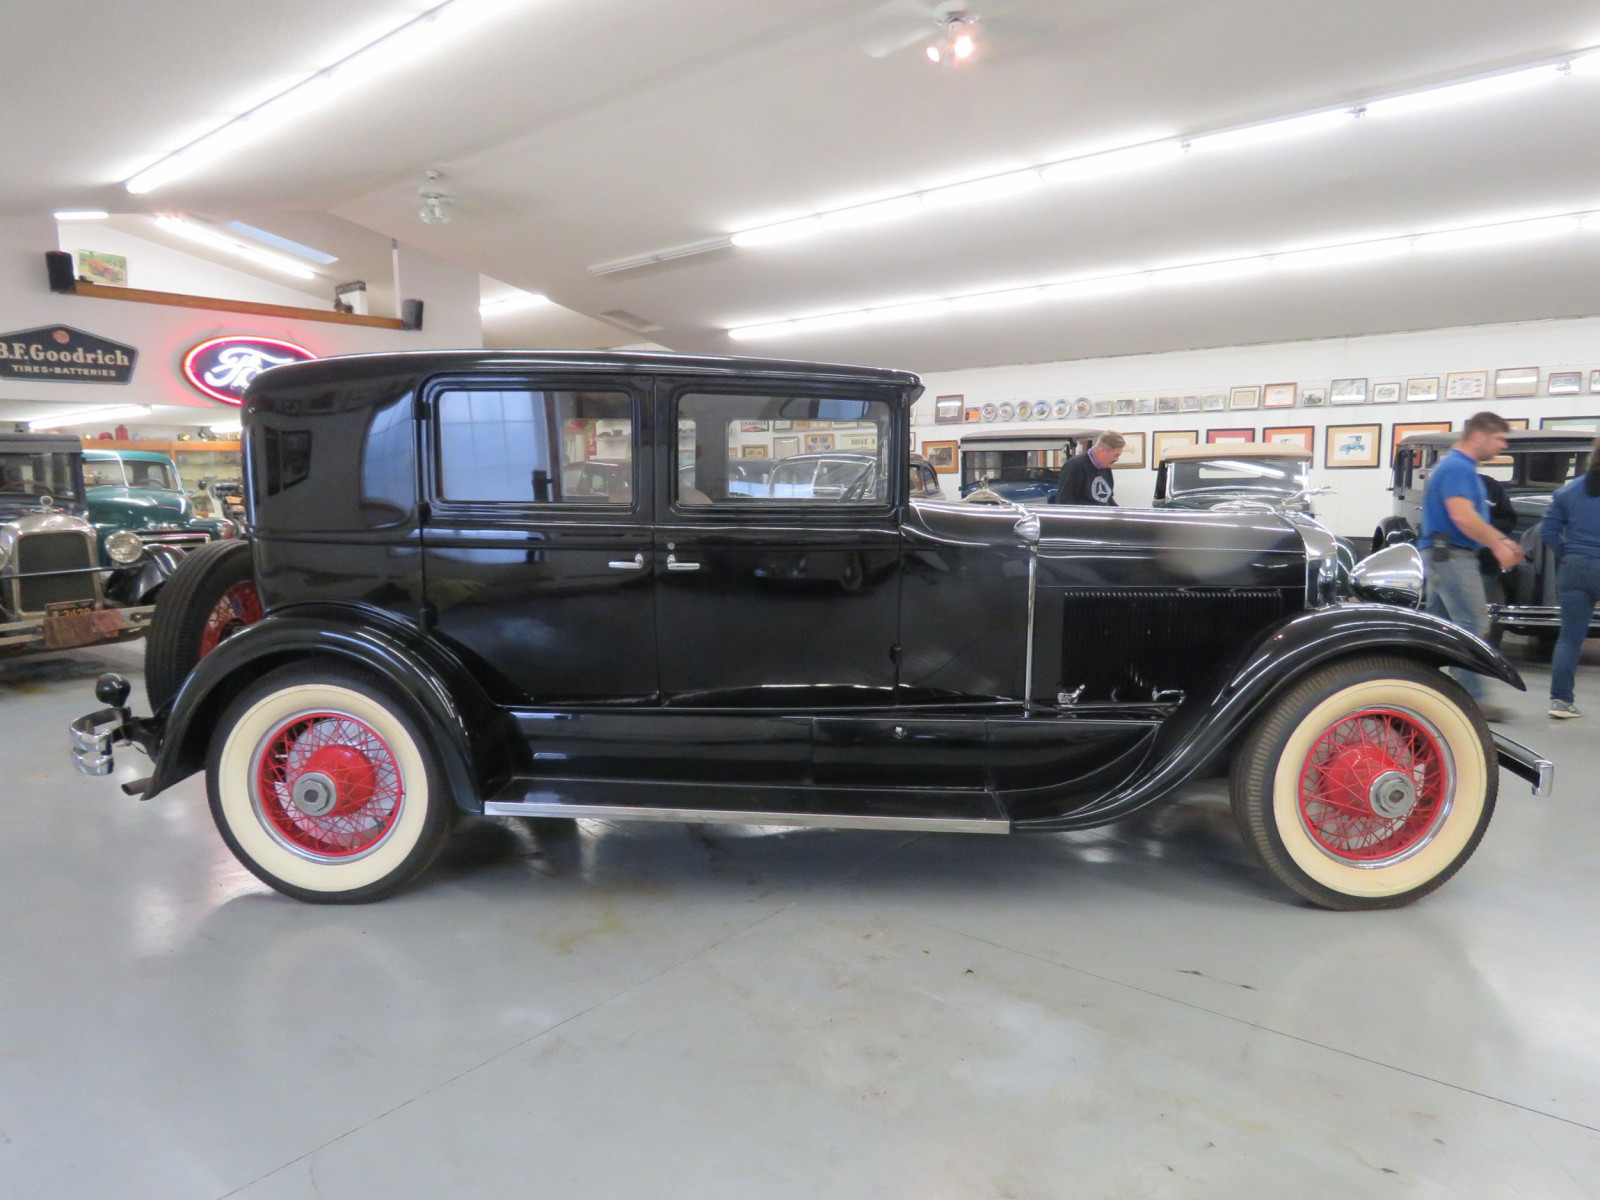 1929 Lincoln Model L 4dr Sedan - Image 5